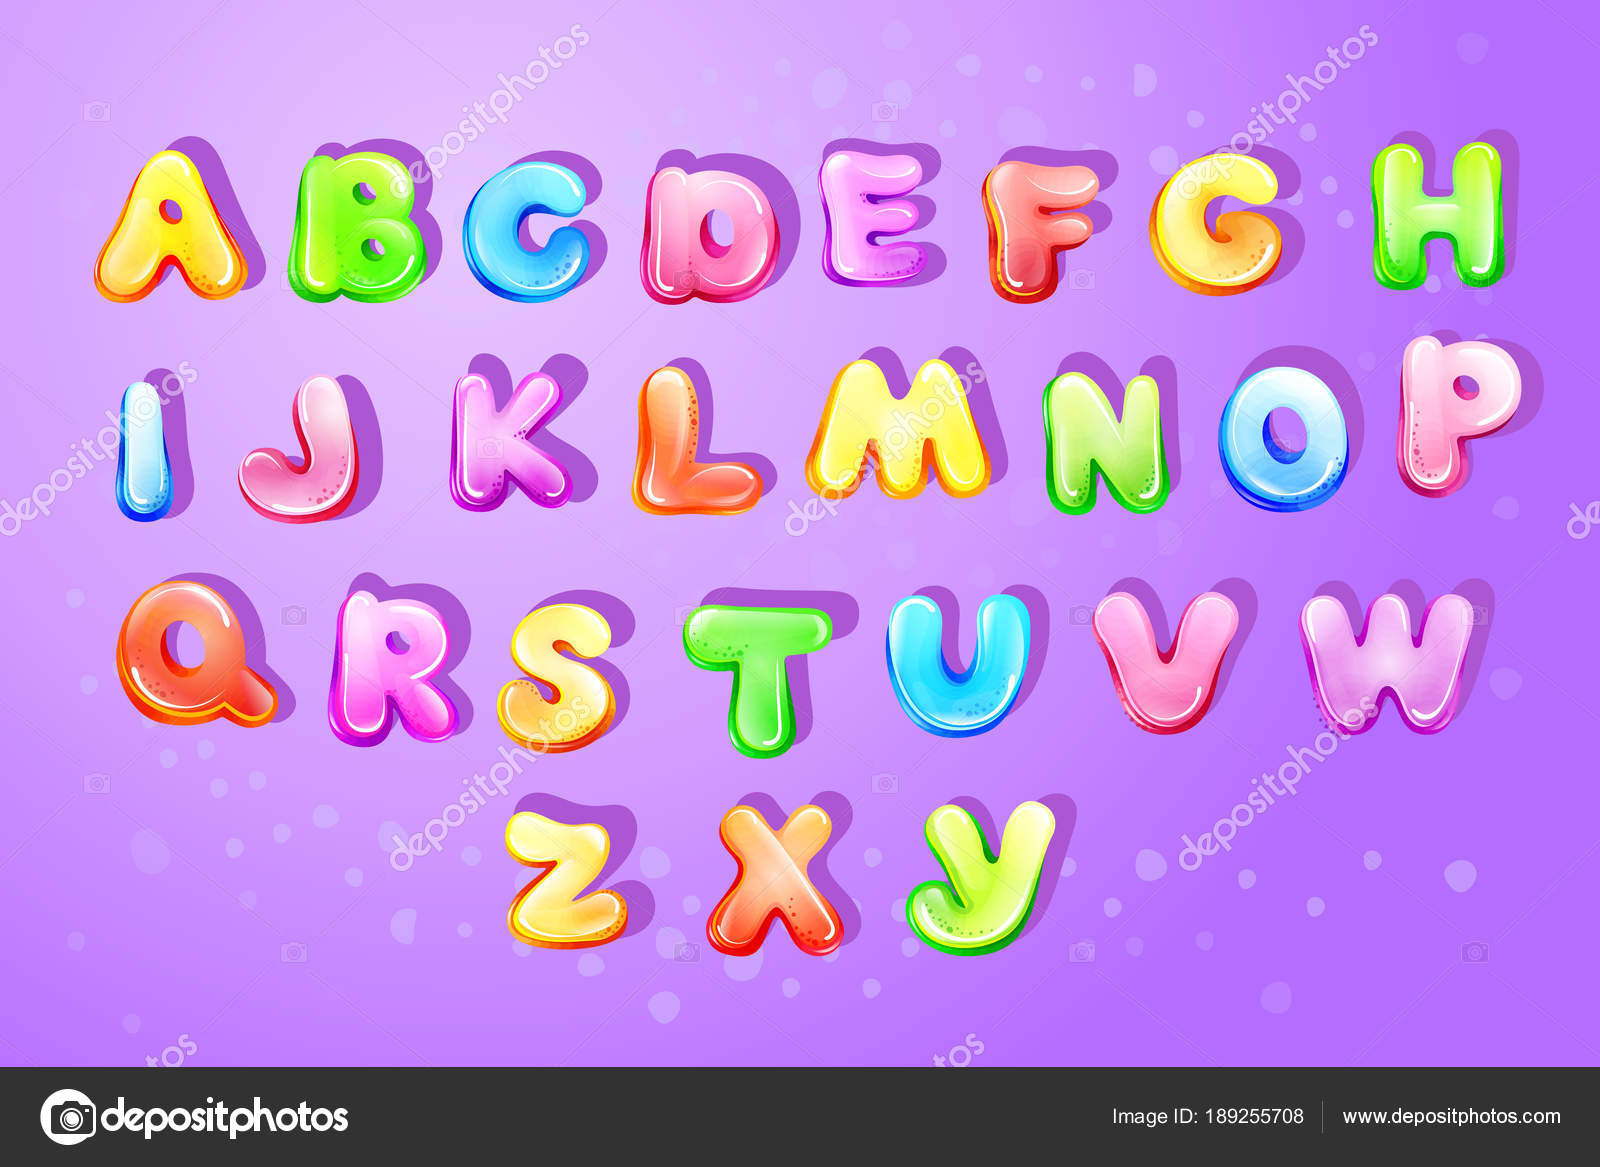 vector colorful kids english alphabet children font template preschool kindergarten game typography latin text design glossy bubble style letter